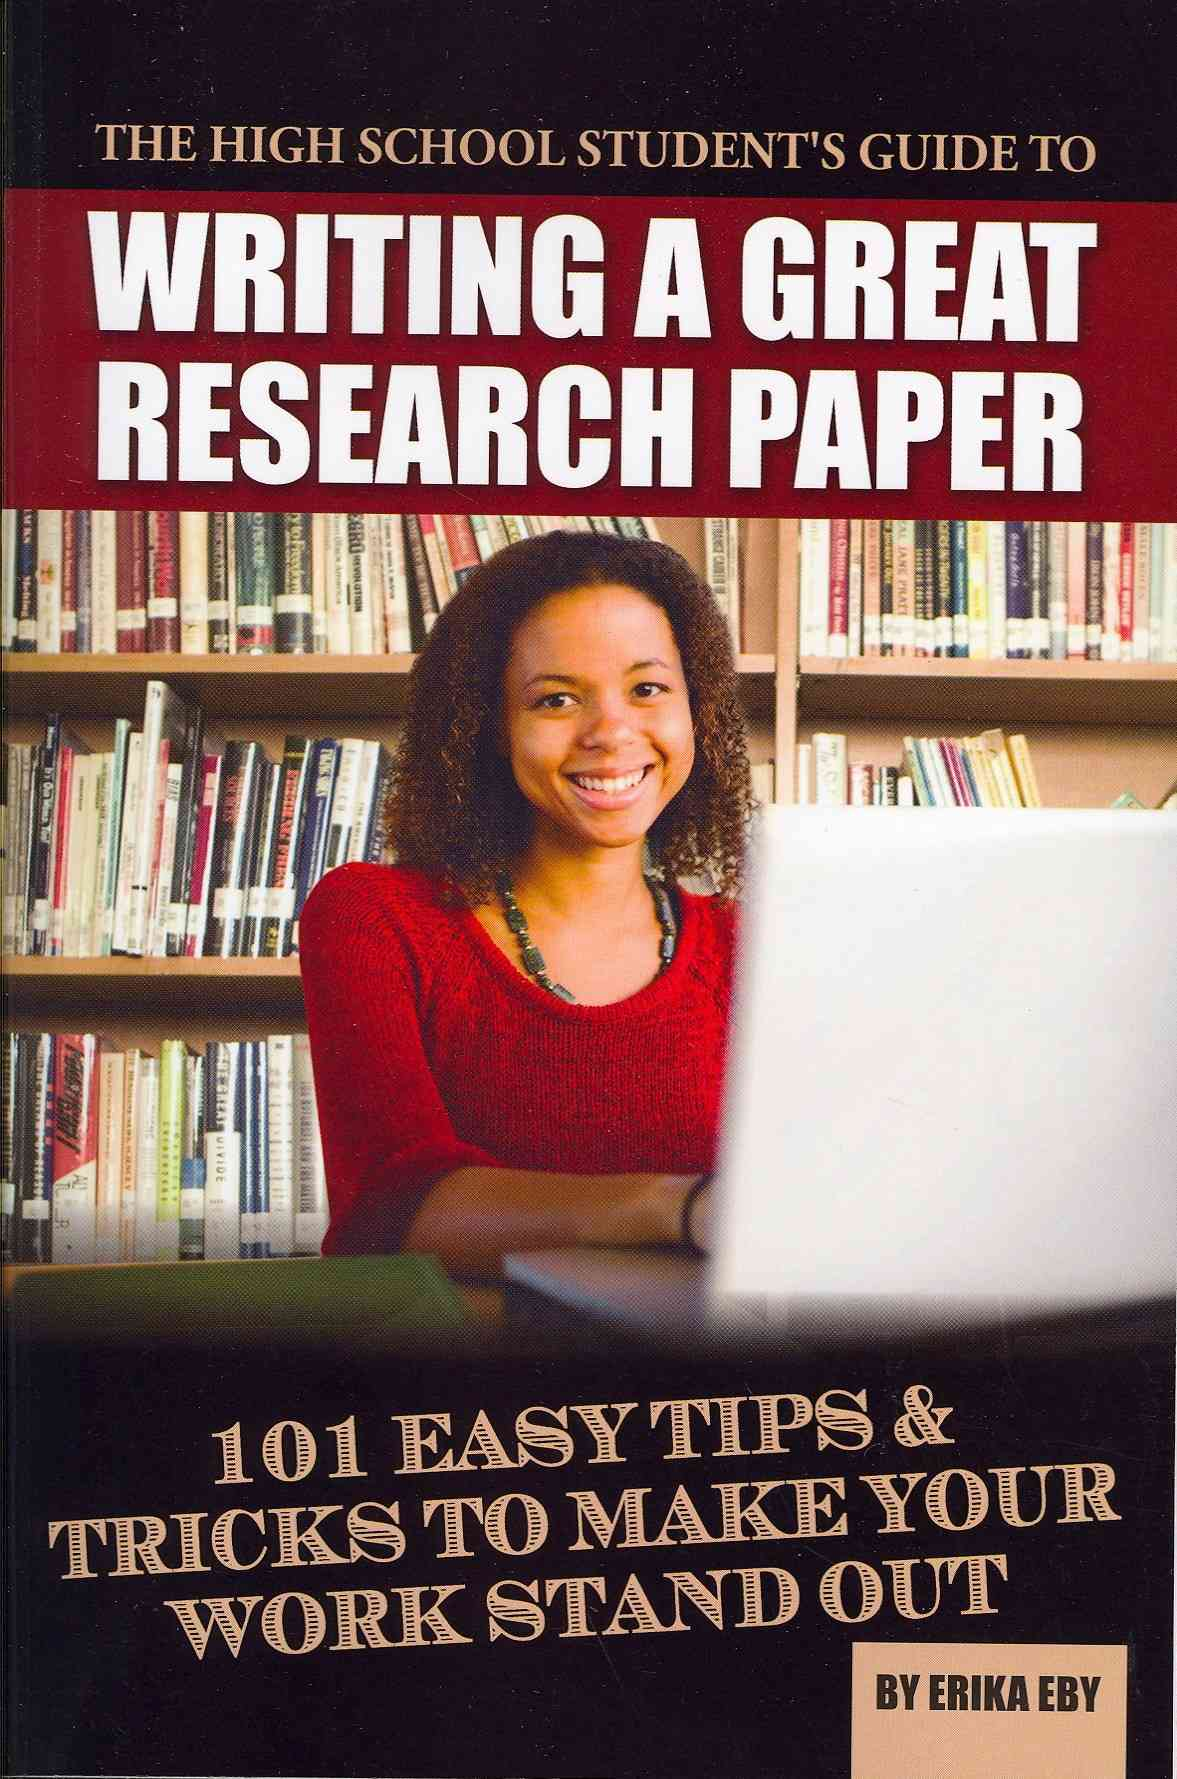 The High School Student's Guide to Writing a Great Research Paper: 101 Easy Tips & Tricks to Make Your Work Stand... (Paperback)